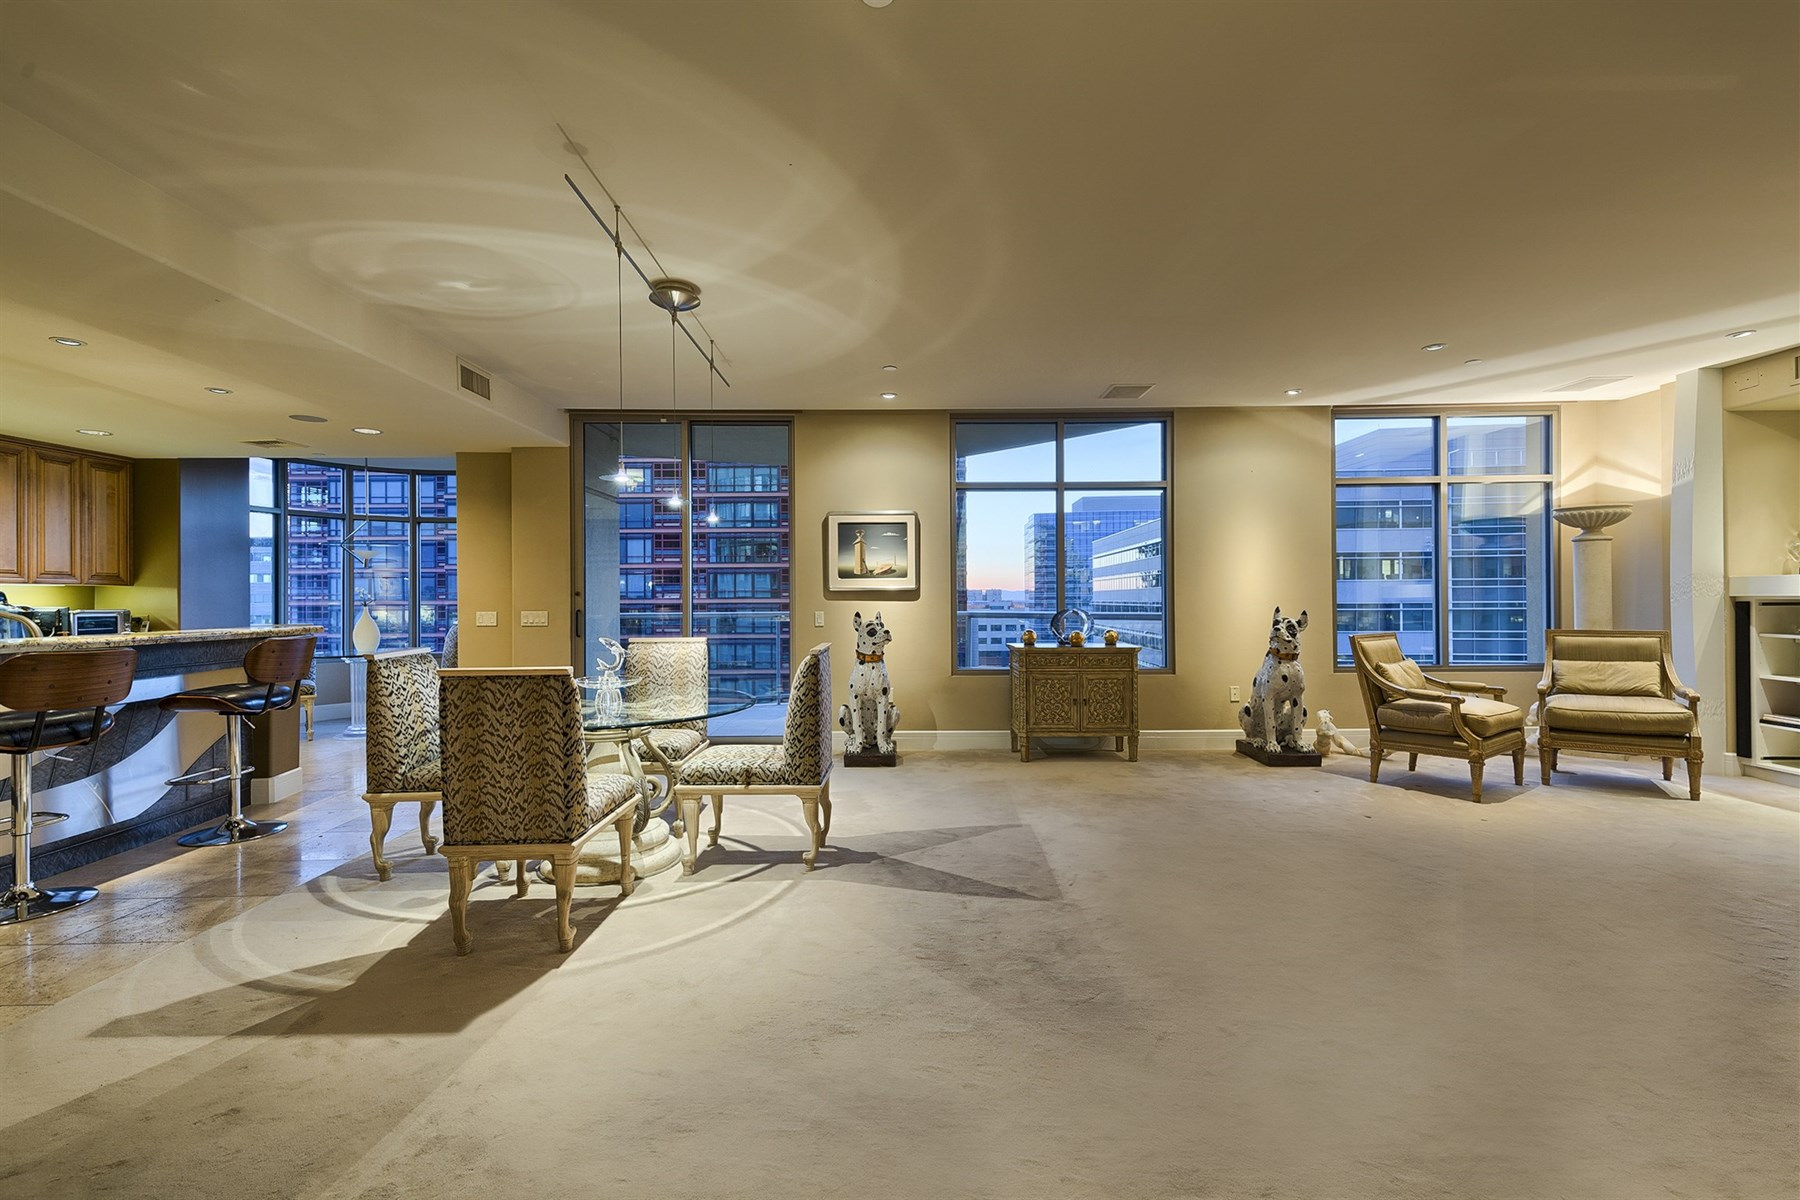 Property For Sale at One Of A Kind Dazzling Residence on 8th Floor at Prestigious Esplanade Place